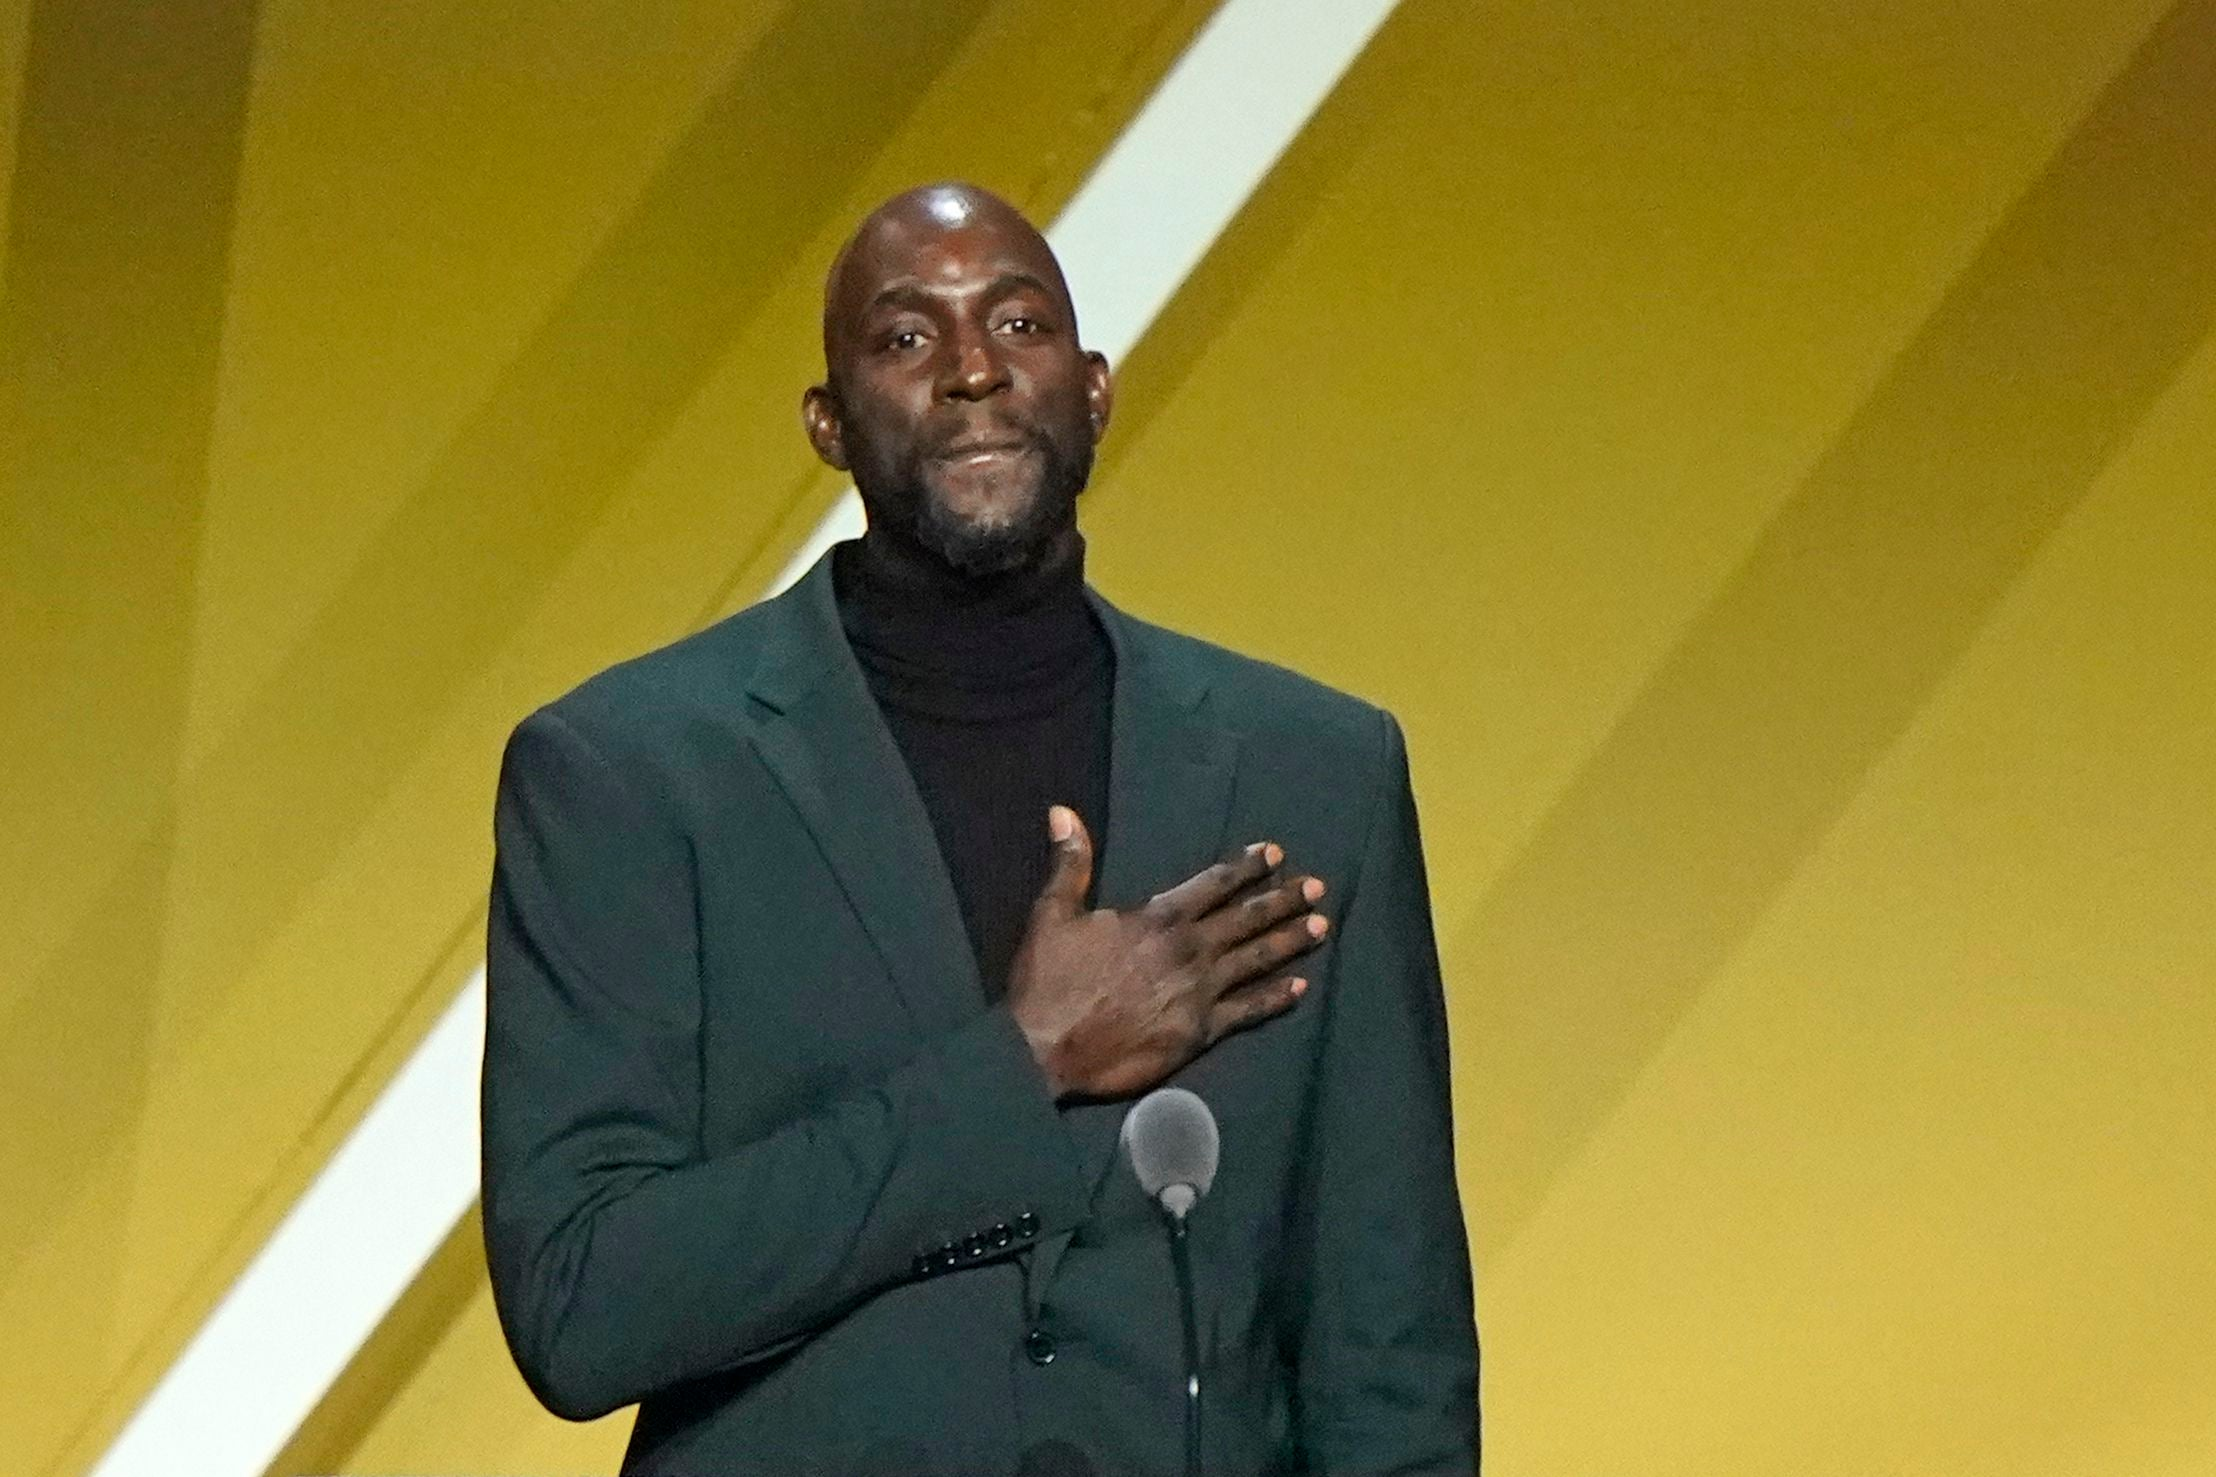 Here's what Kevin Garnett said in his Hall of Fame speech